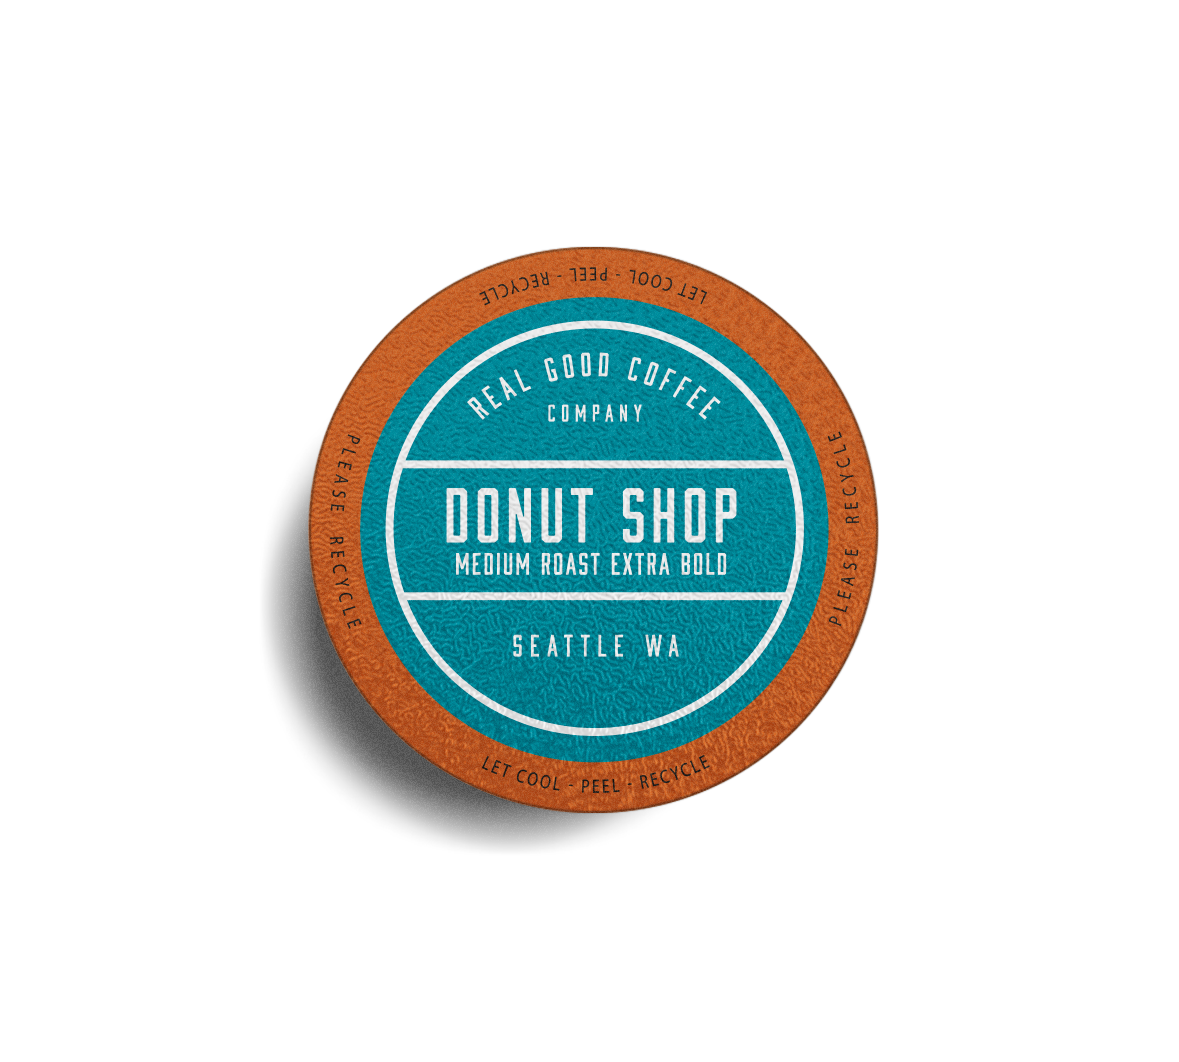 Donut Shop Medium Roast K-Cups